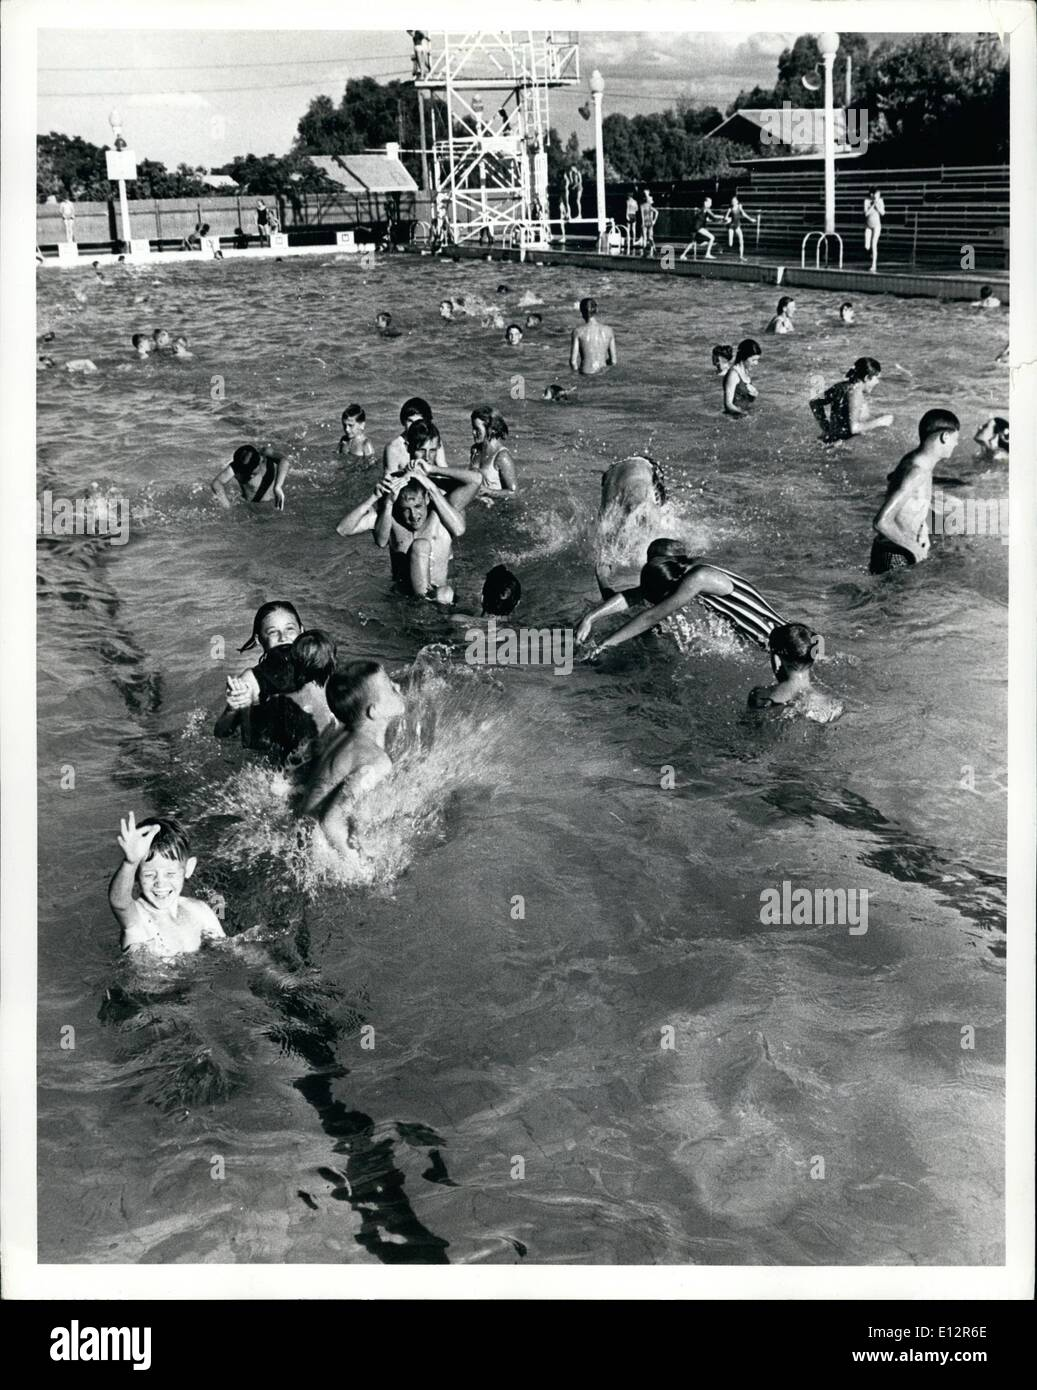 25, 2012   The Olympic Swimming Pool At Parkes NSW , About 300 Miles From  Sydney Where There Is No Water Shortage Because